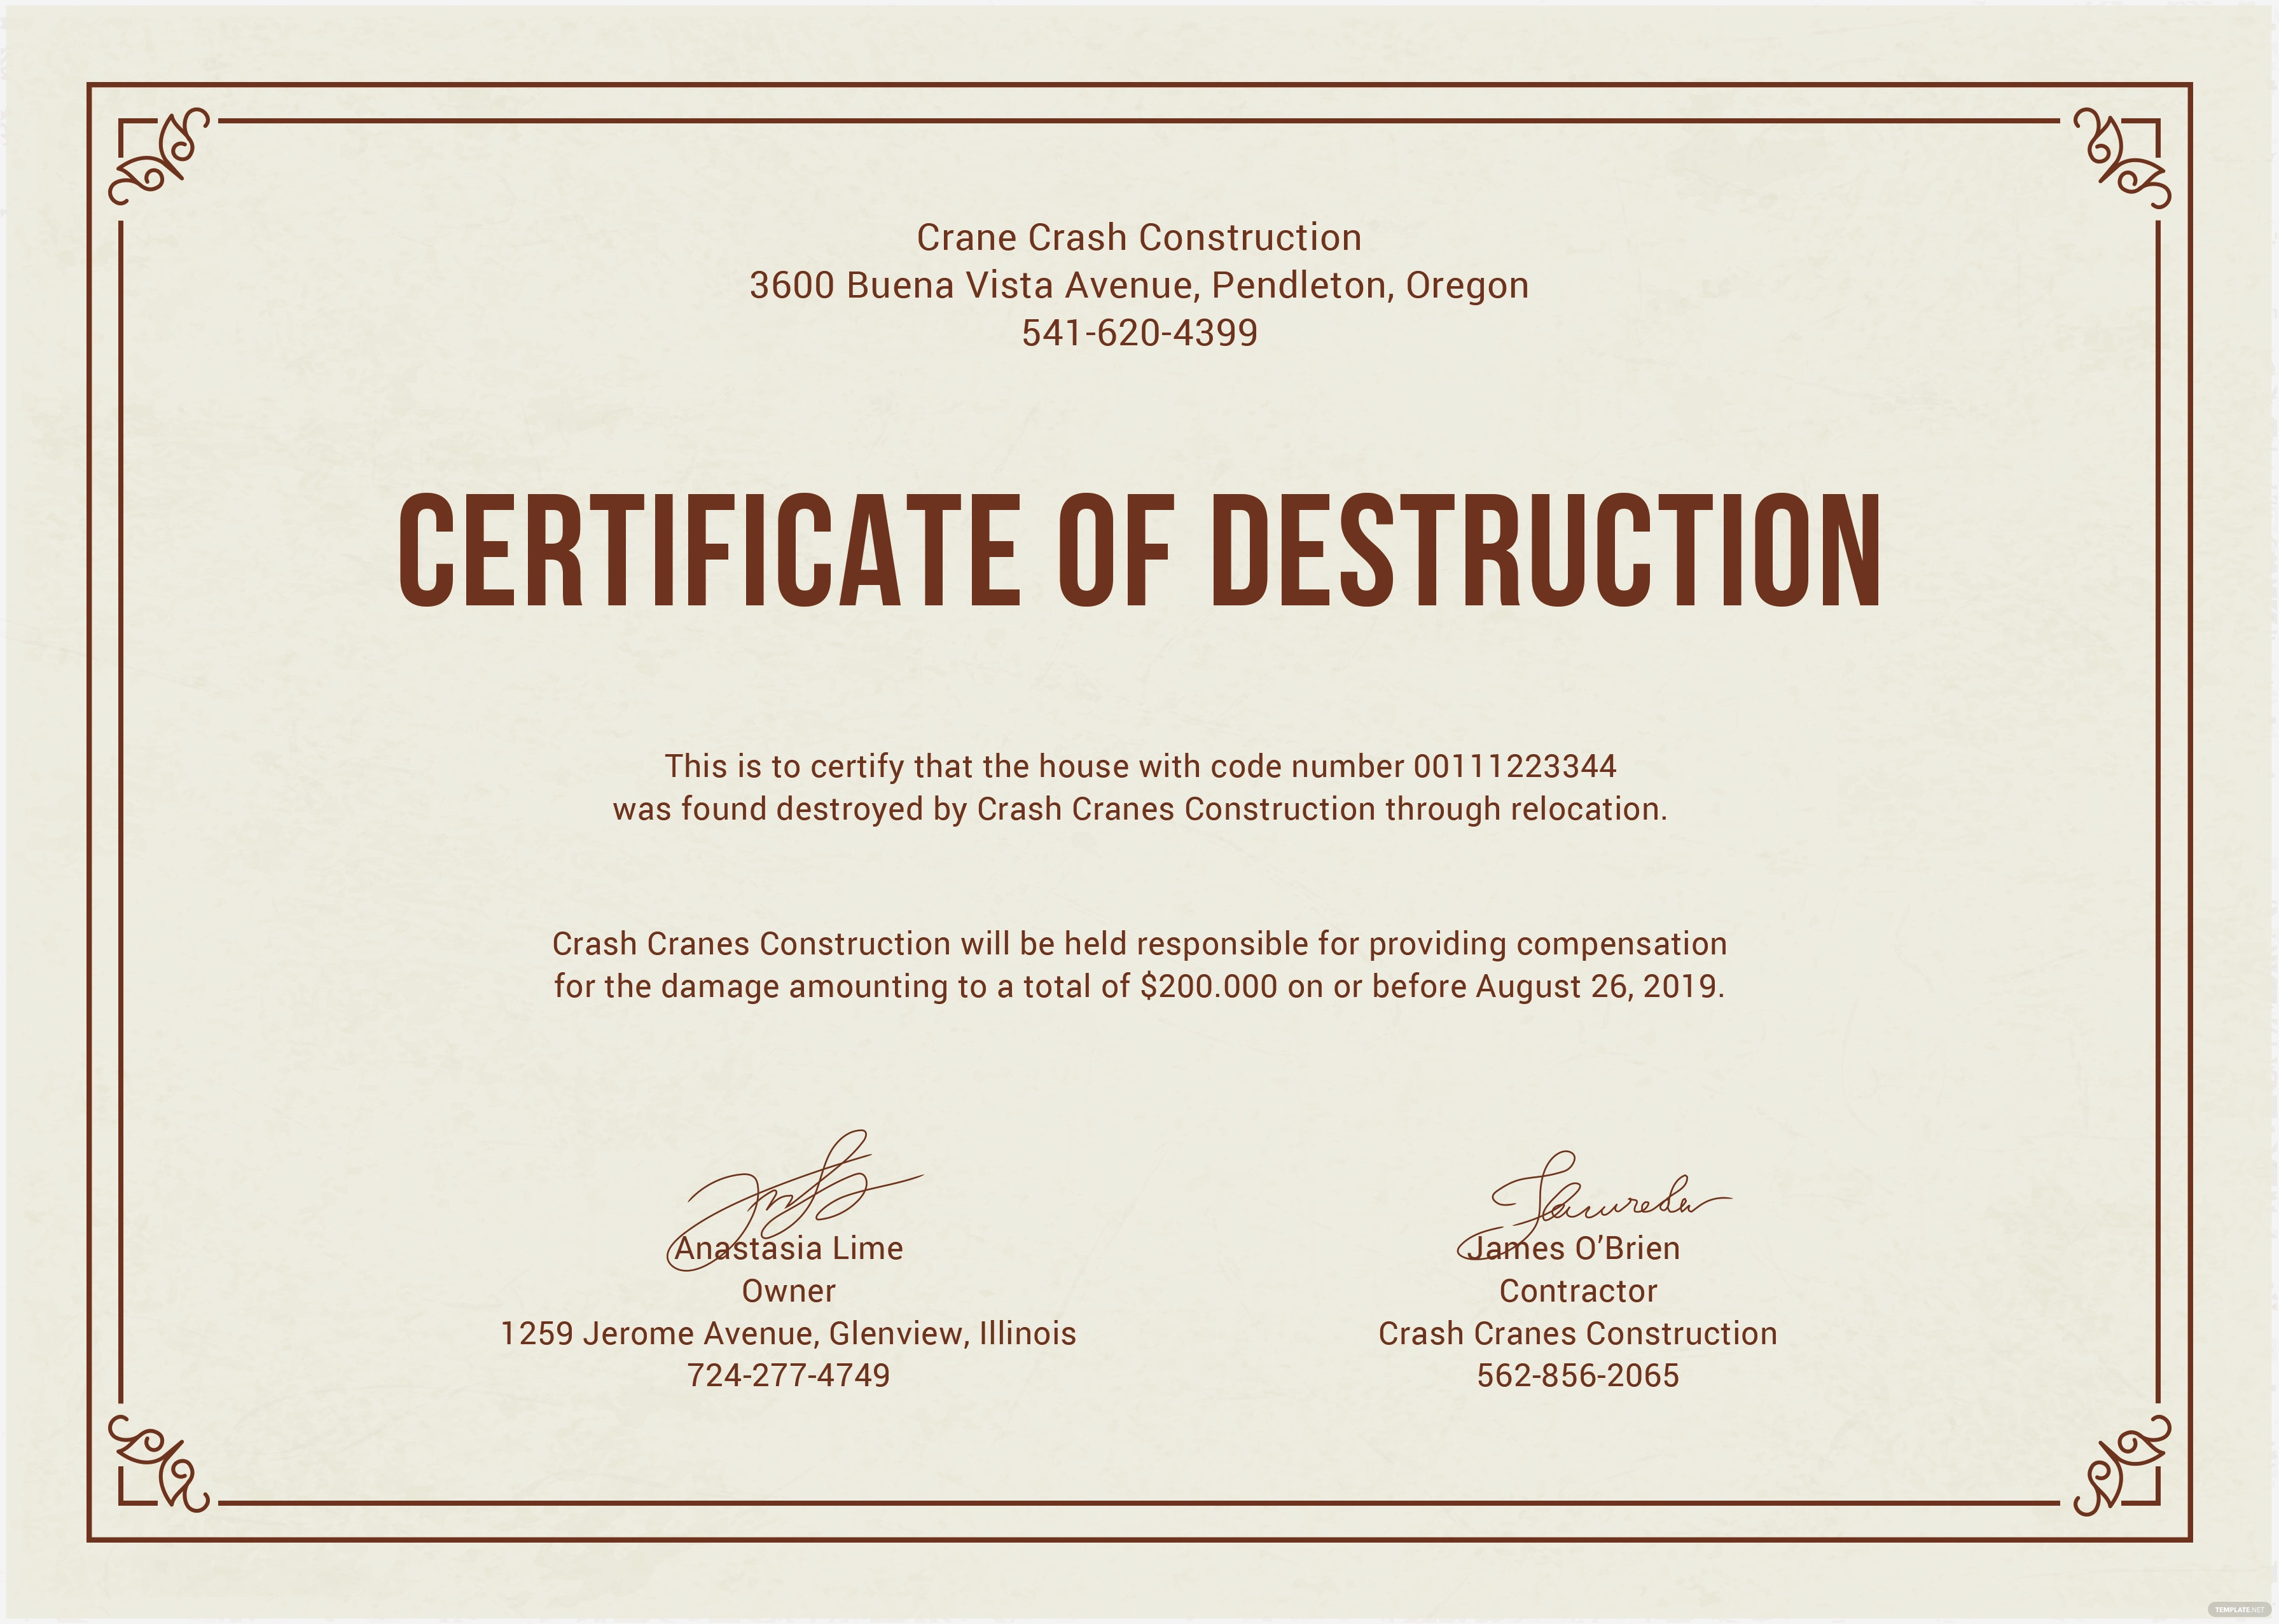 Free Certificate of Destruction Template in Adobe ...